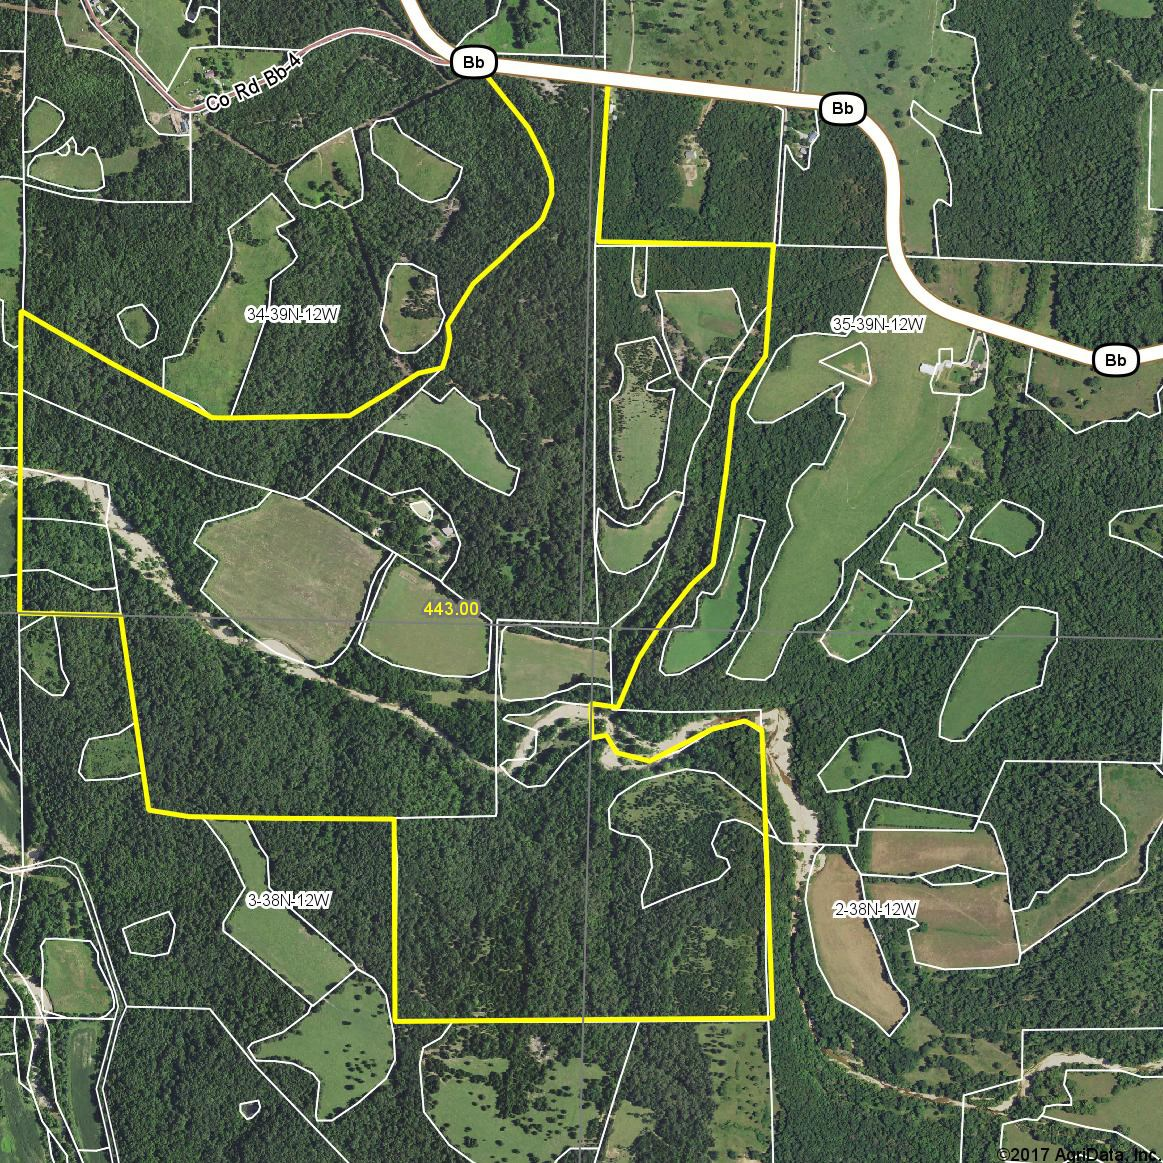 Farm, Marketable Timber Land & Home For Sale in Iberia, MO